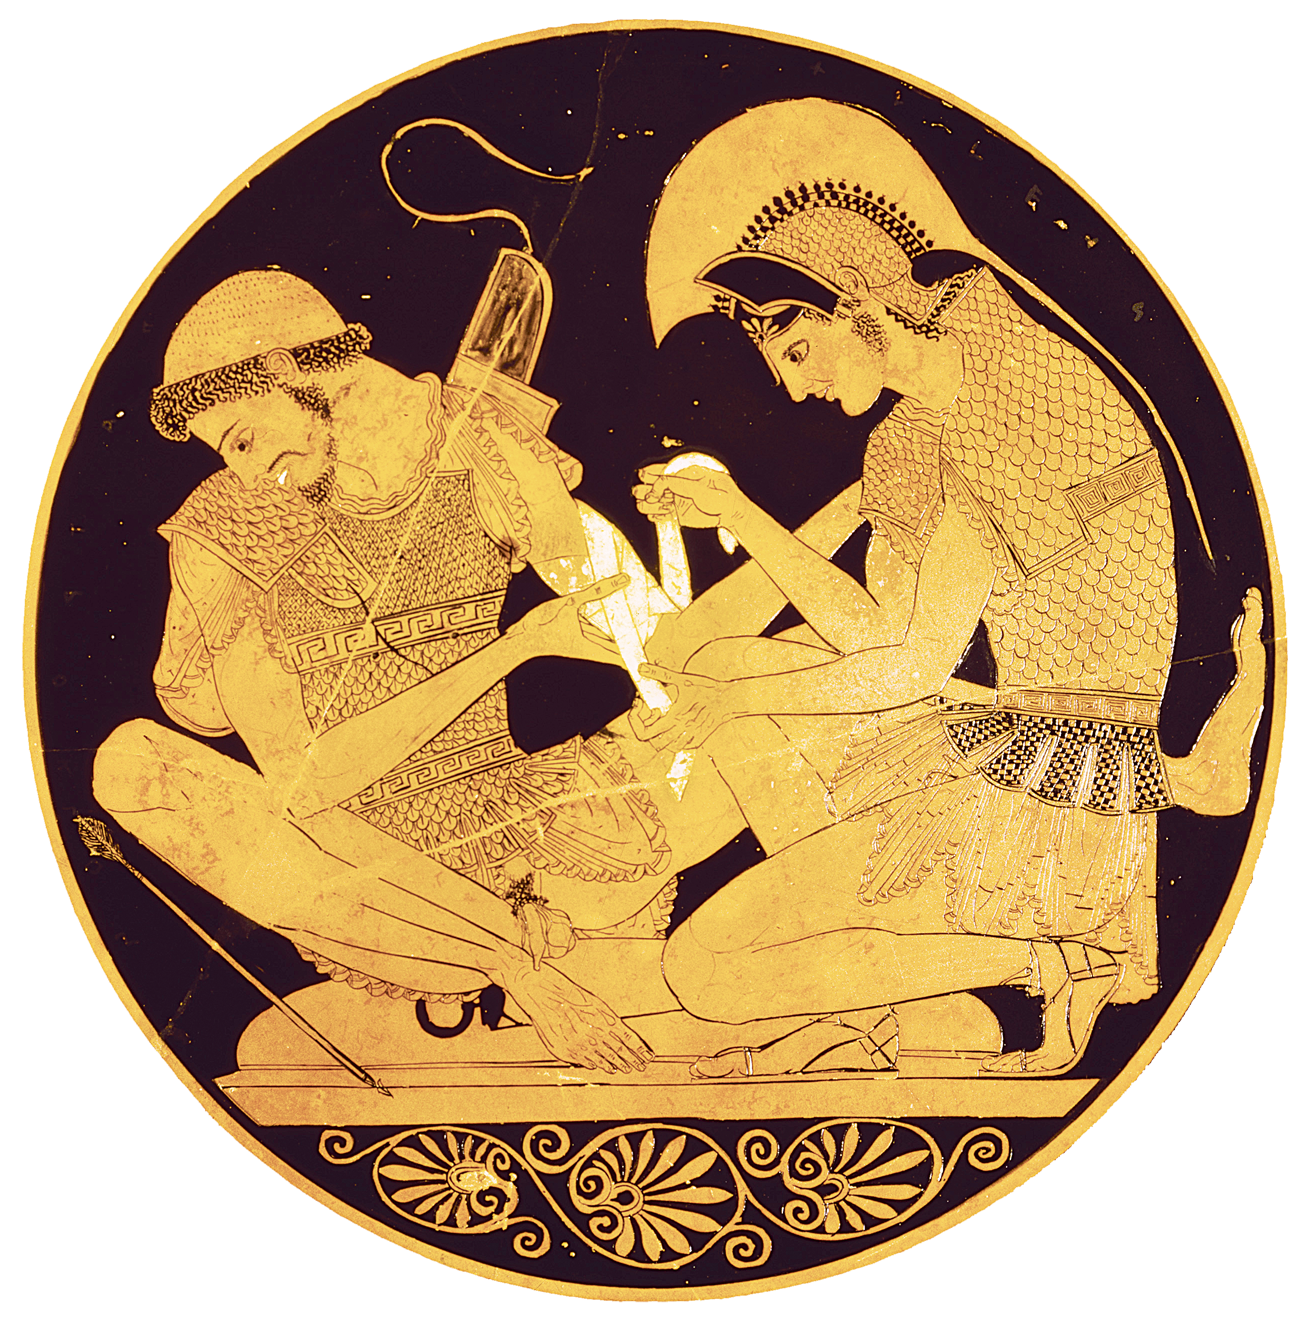 Achilles binding Patroclus' wounds, from a kylix by the Sosias Painter, c. 500 BC. Altes Museum, Berlin, Germany.